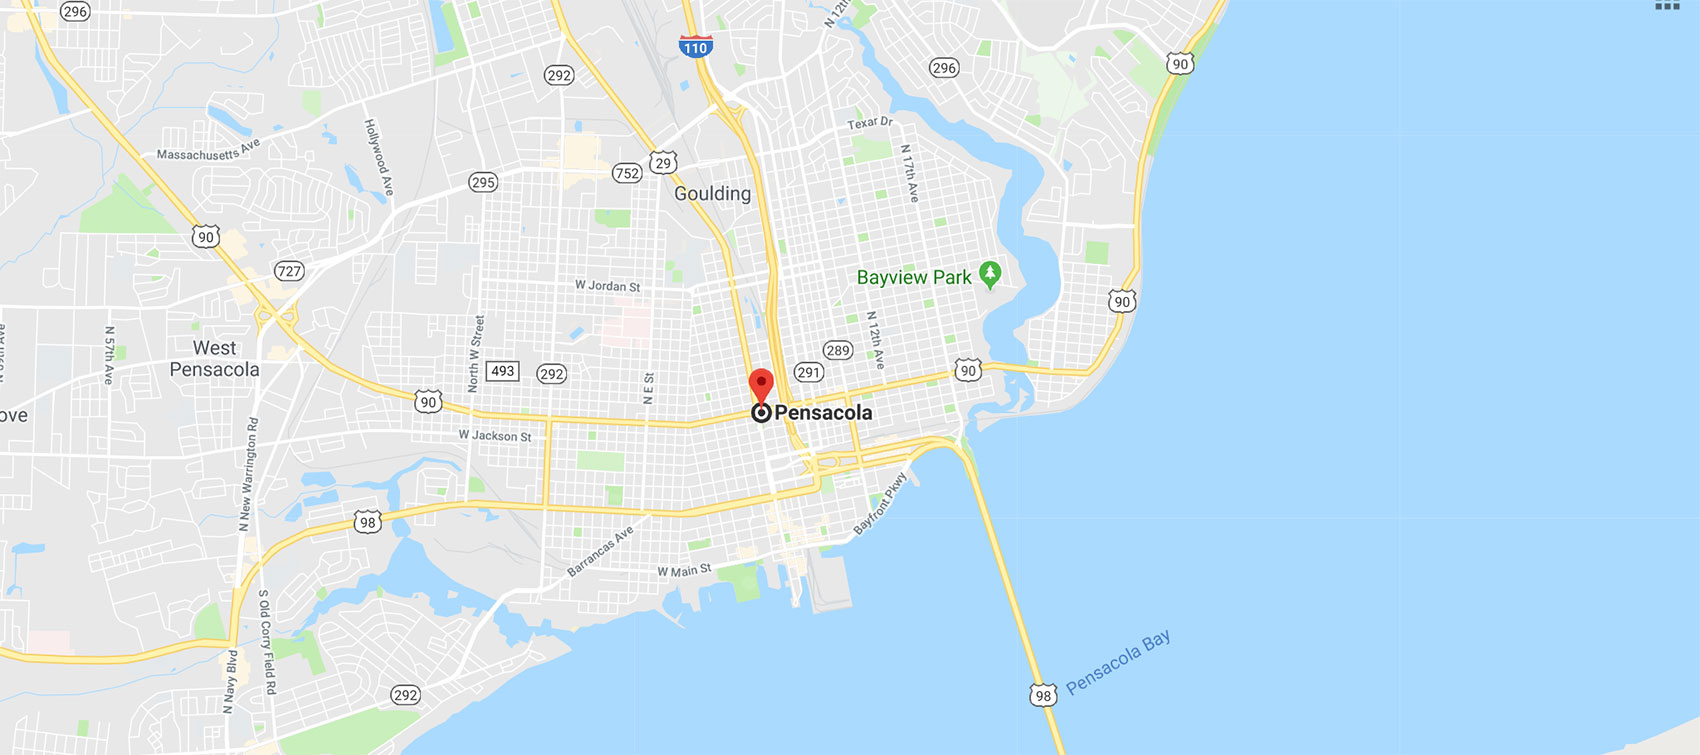 map of pensacola florida